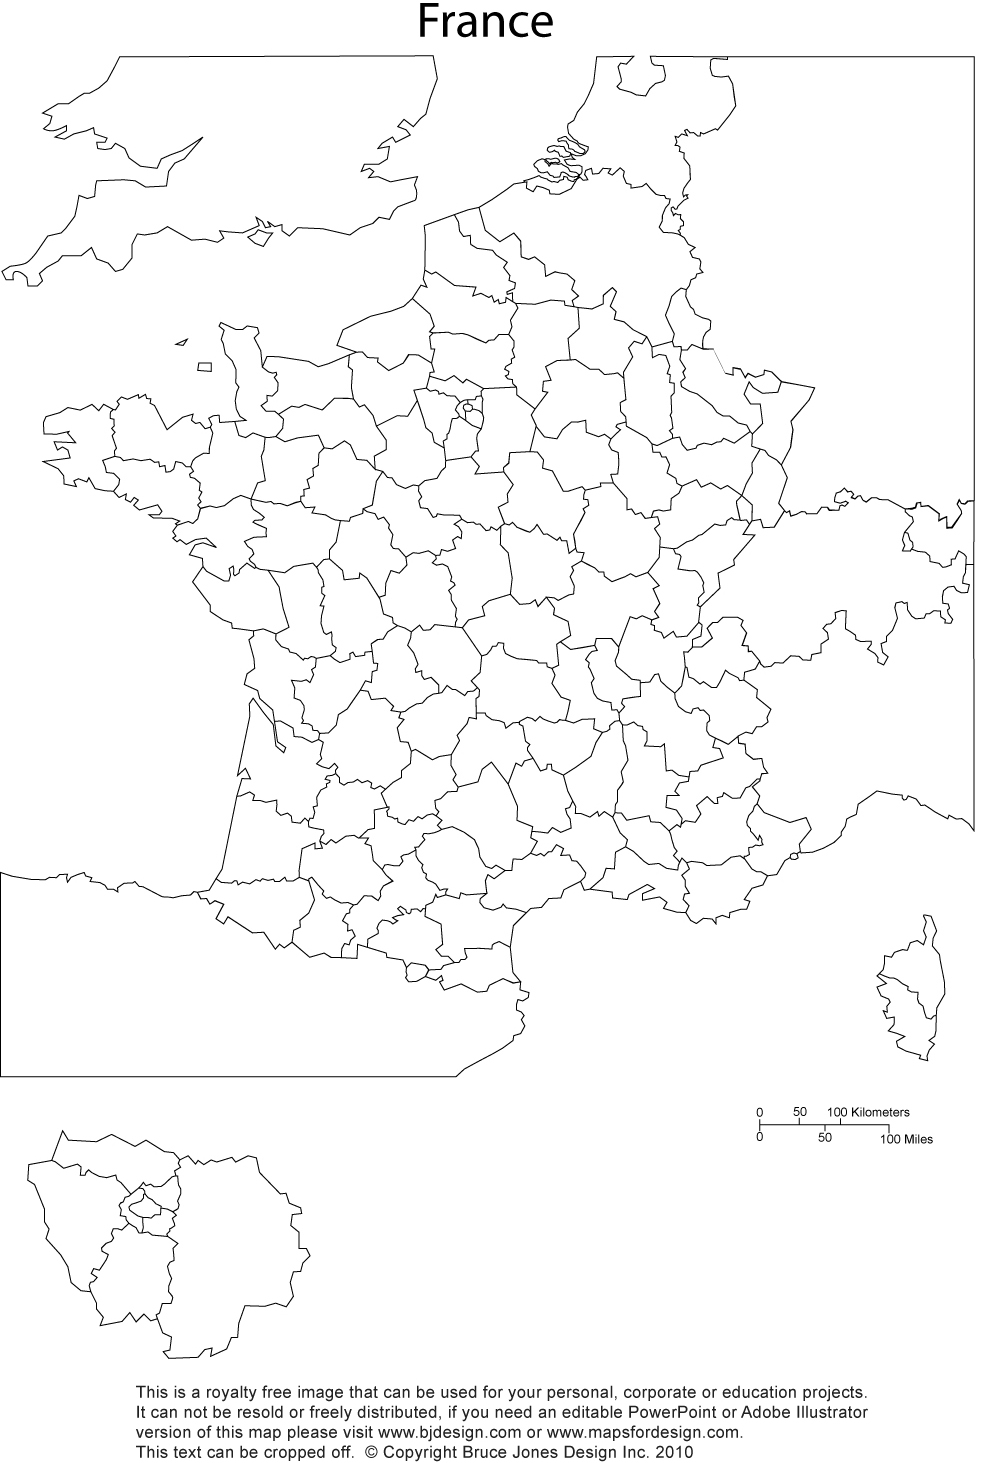 France Map, Printable, blank, royalty in 2020 (With